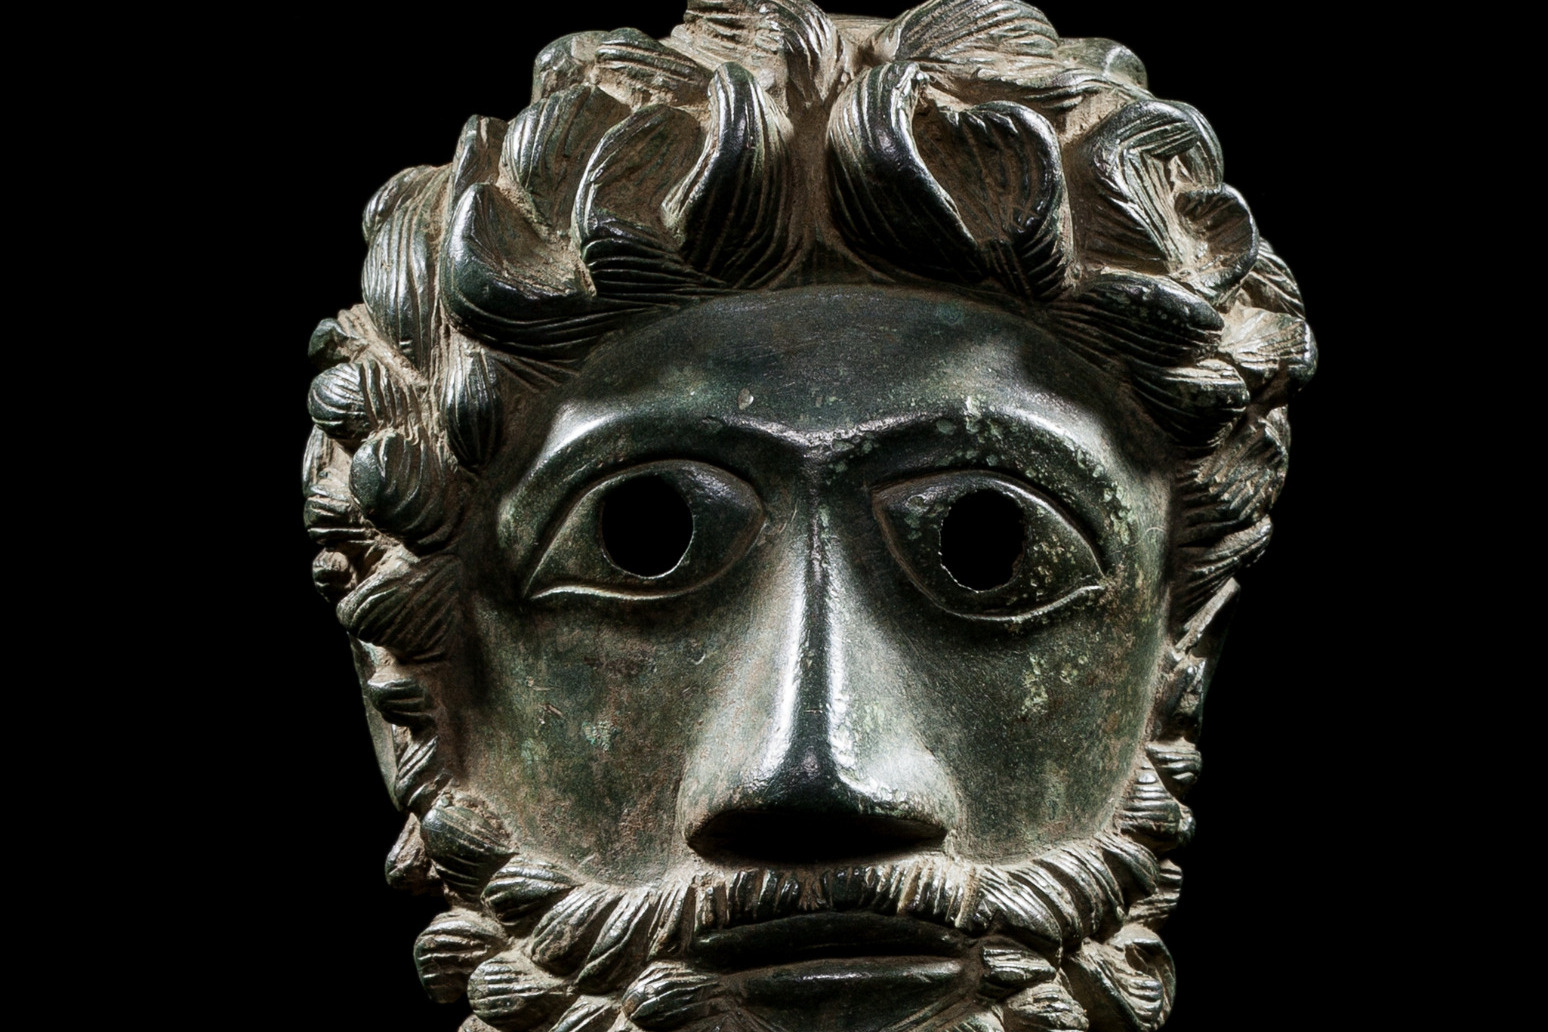 Nationally significant collection of Roman bronzes acquired by museum thumbnail